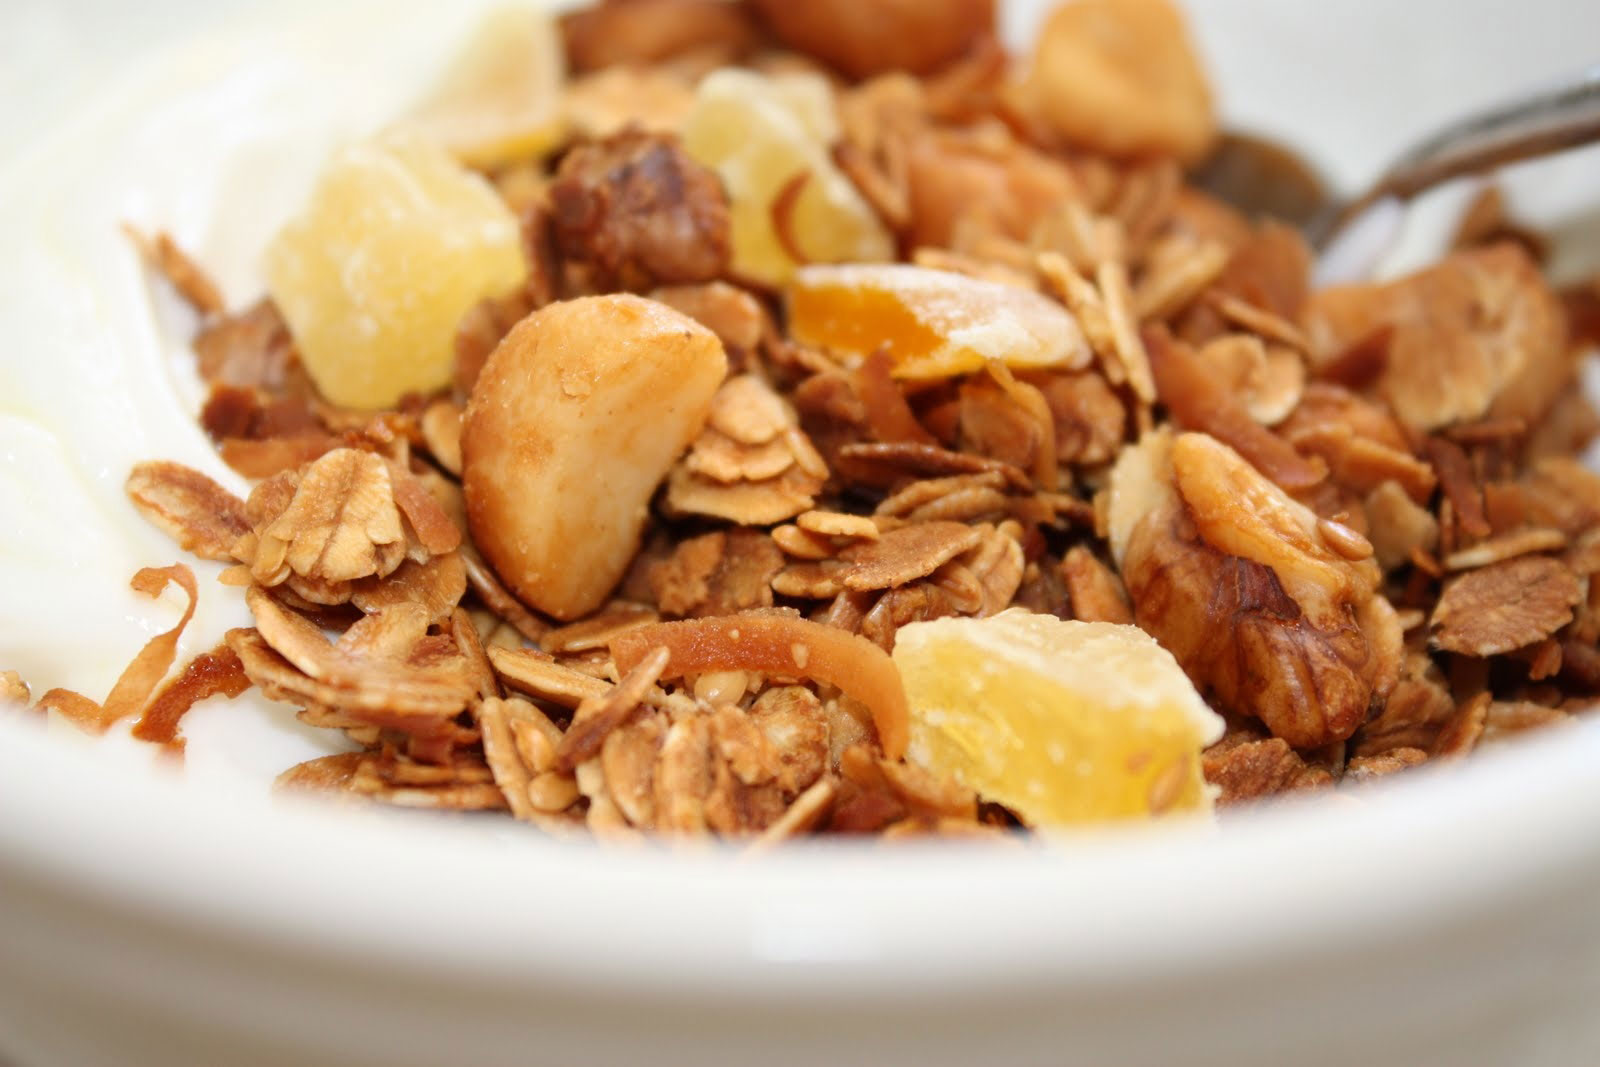 Online Personal Trainer Breakfast Recipes - Rise & Shine Granola.jpg